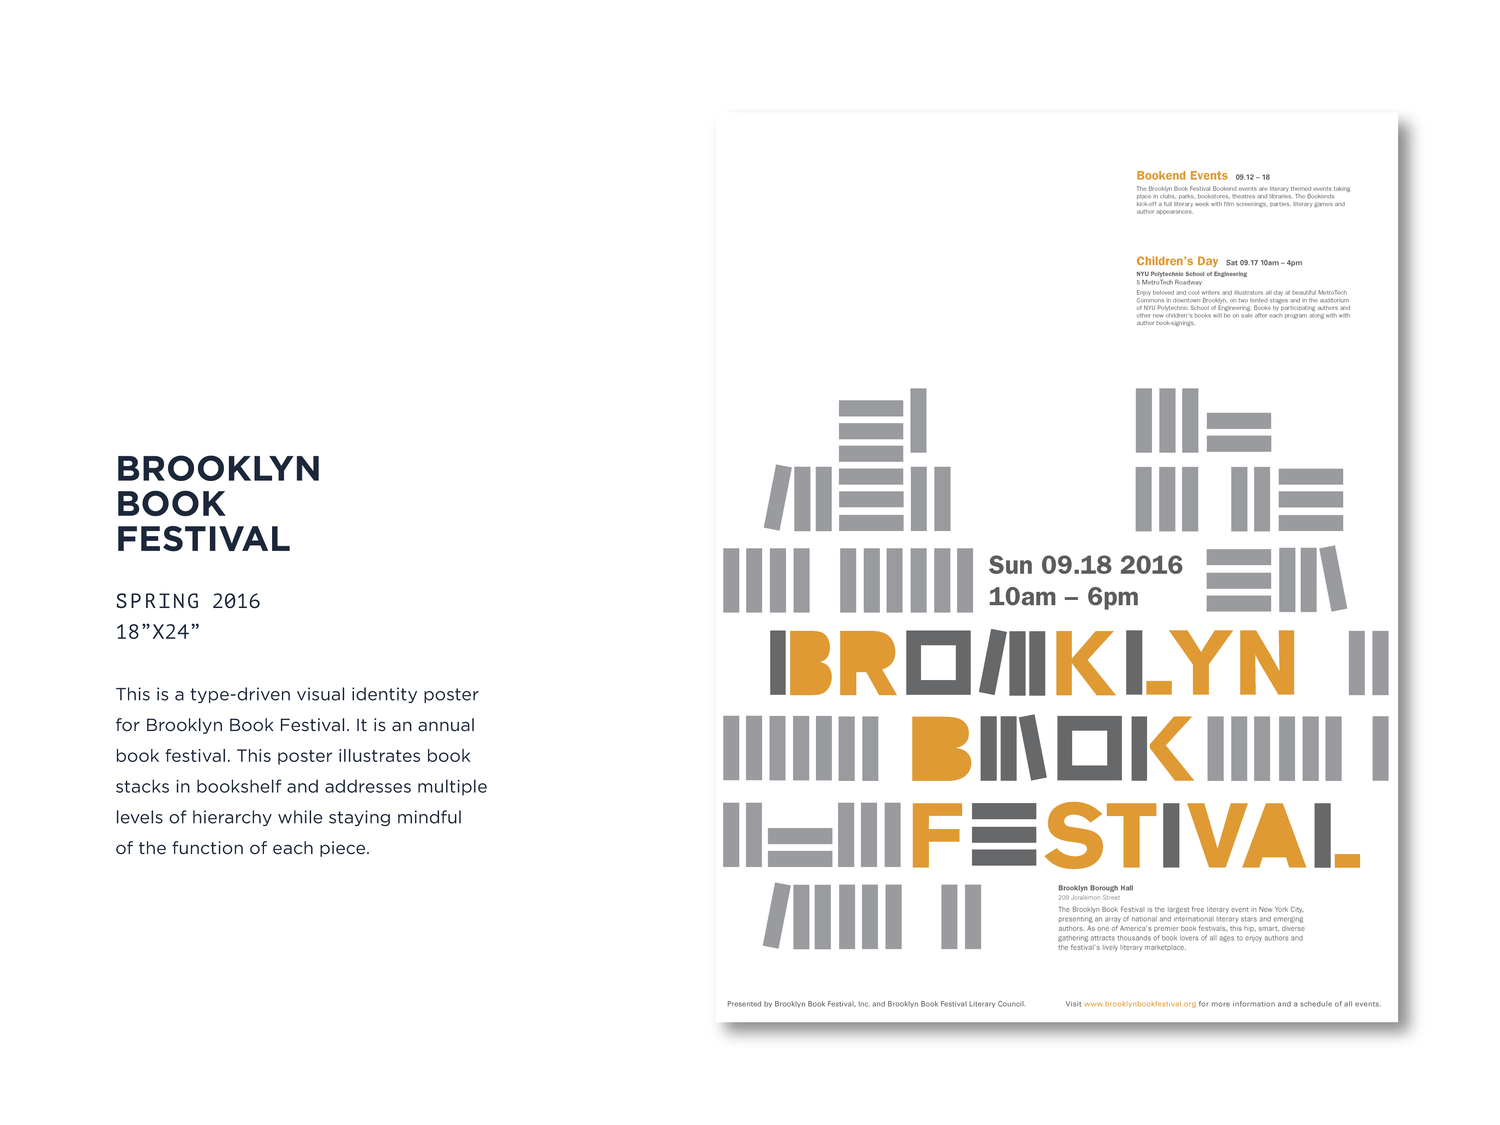 Brooklyn Children's Museum New York City, Brooklyn Book Festival — Mia Minkyung Kwon